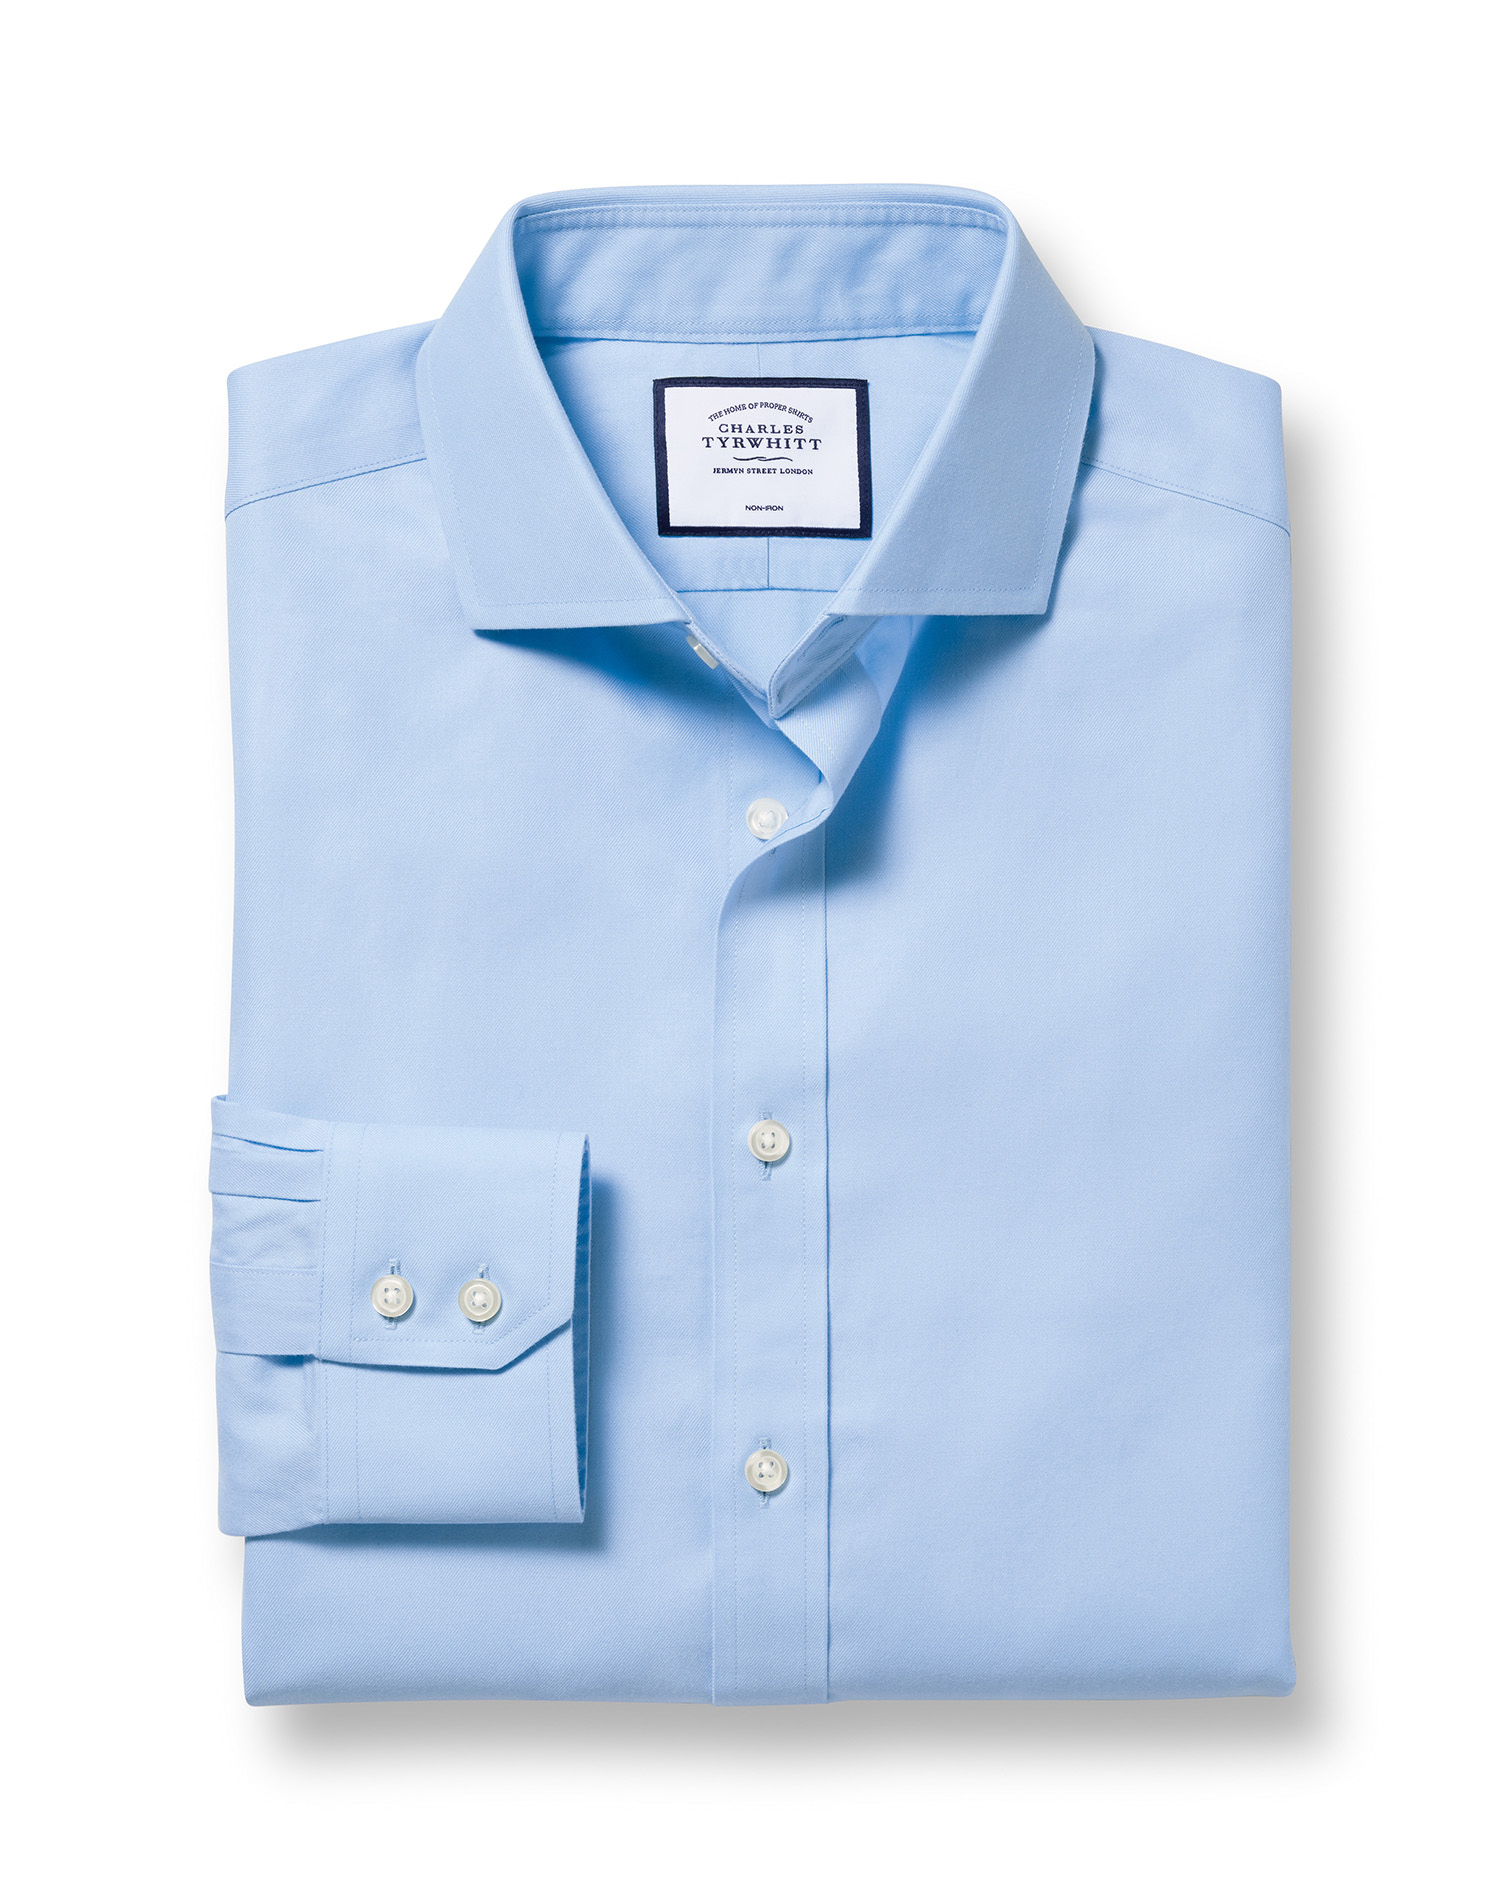 Classic Fit Cutaway Non-Iron Twill Sky Blue Cotton Formal Shirt Double Cuff Size 19/38 by Charles Ty